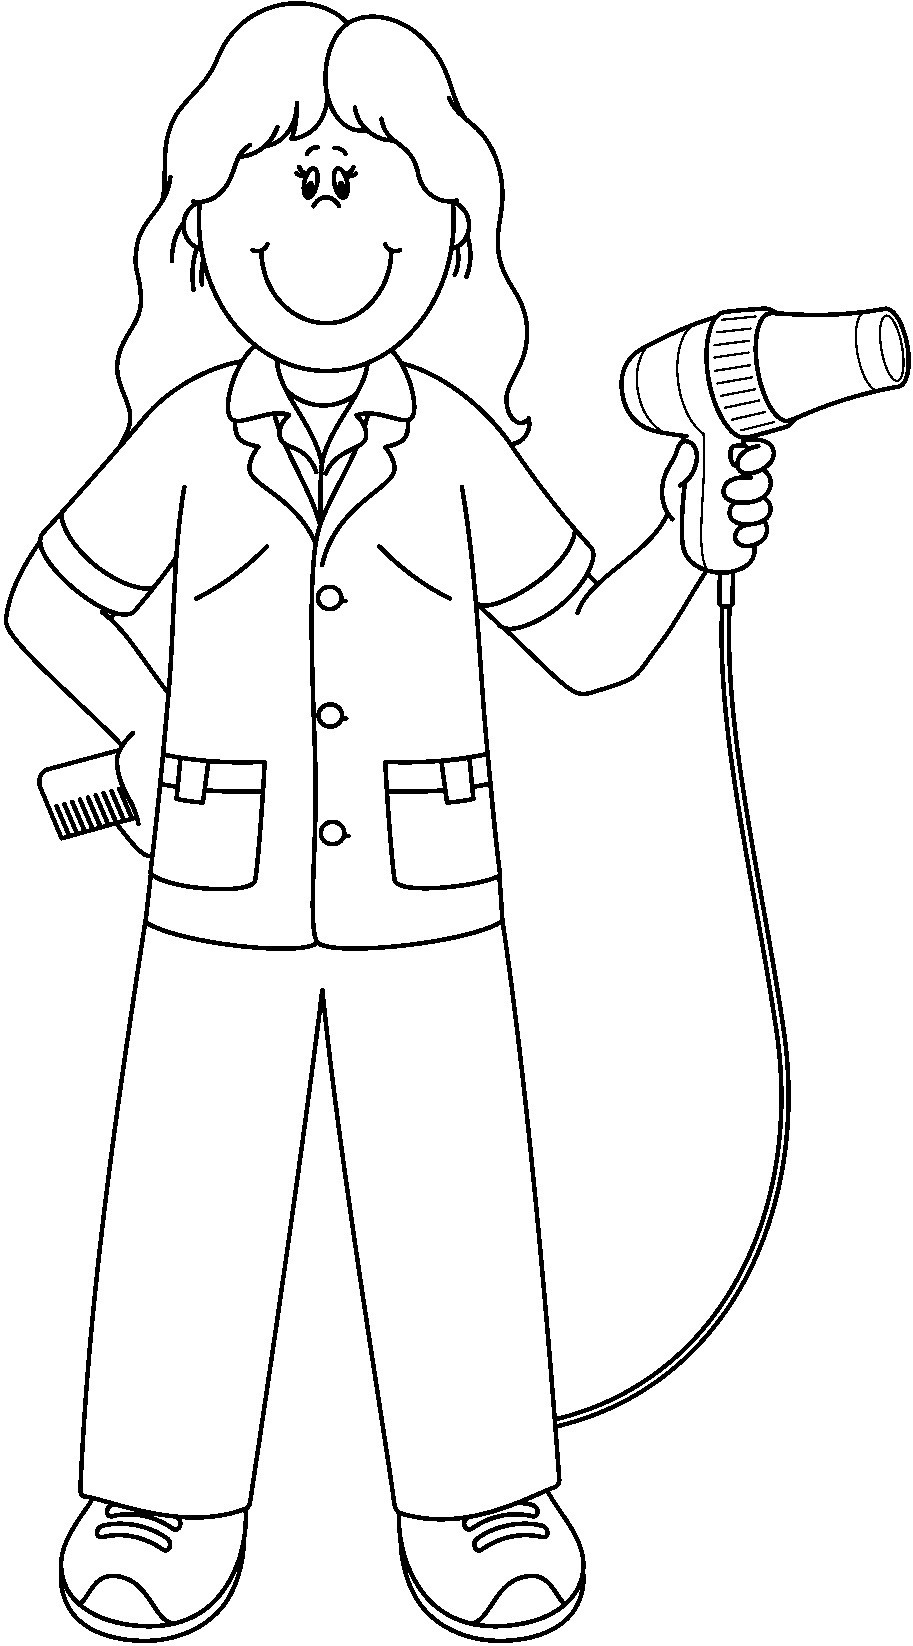 Barber clipart community helper. Coloring pages jennymorgan me